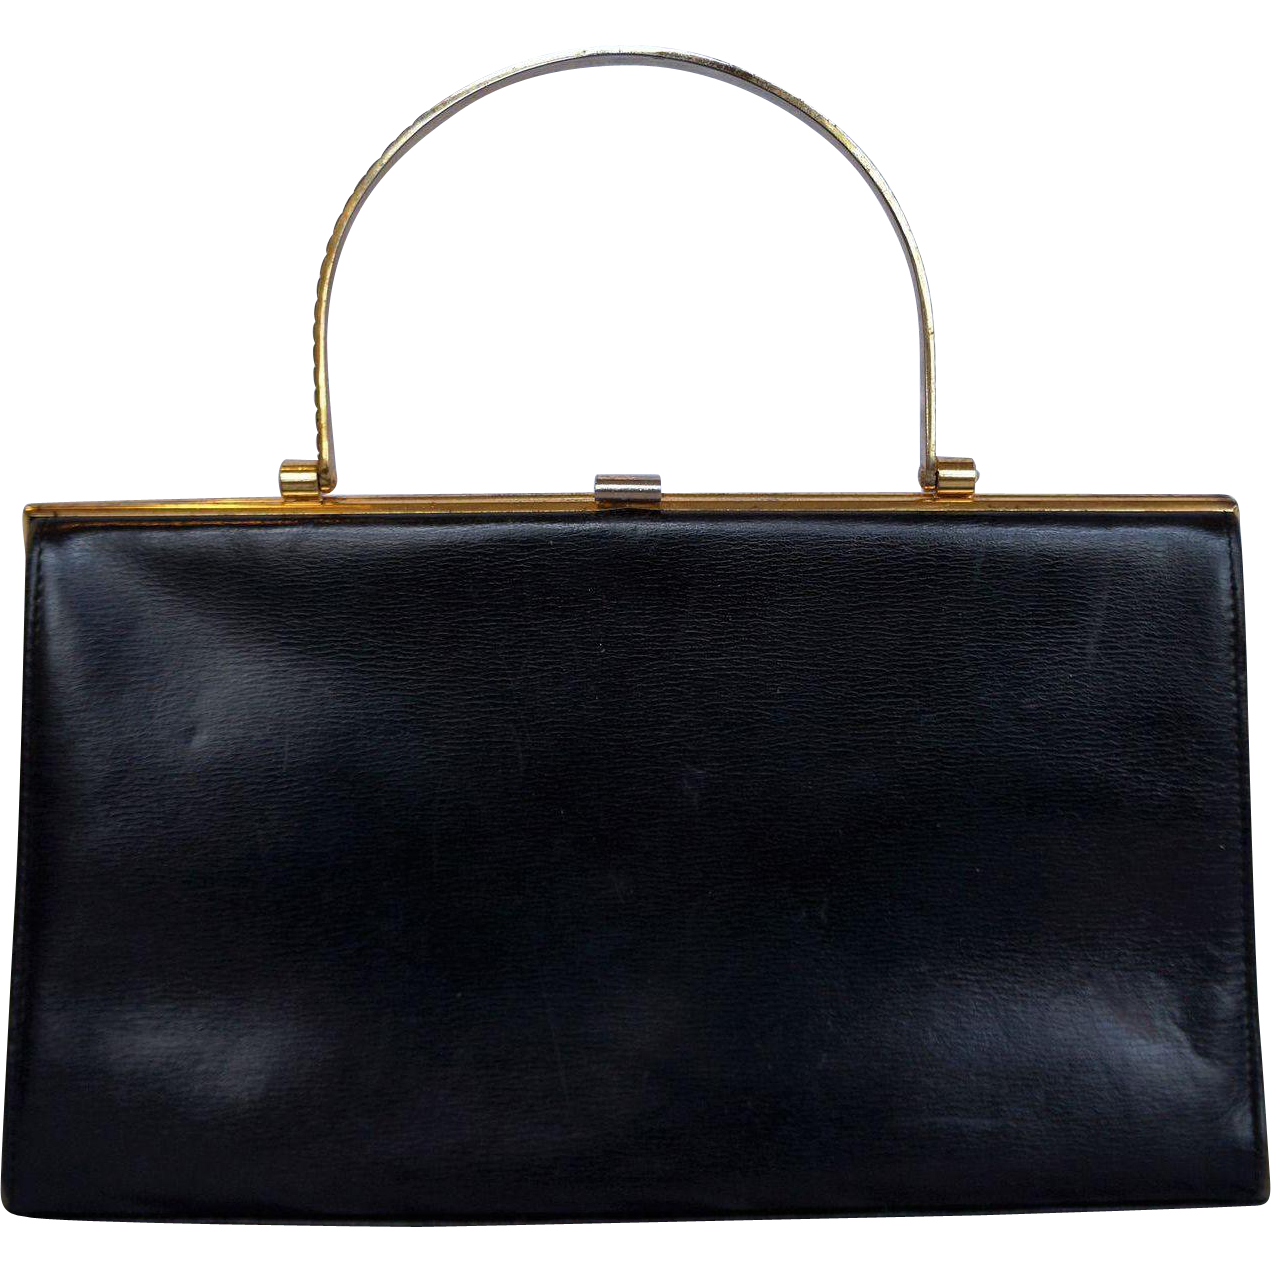 Lumos London Black Leather Handbag Brass Handle